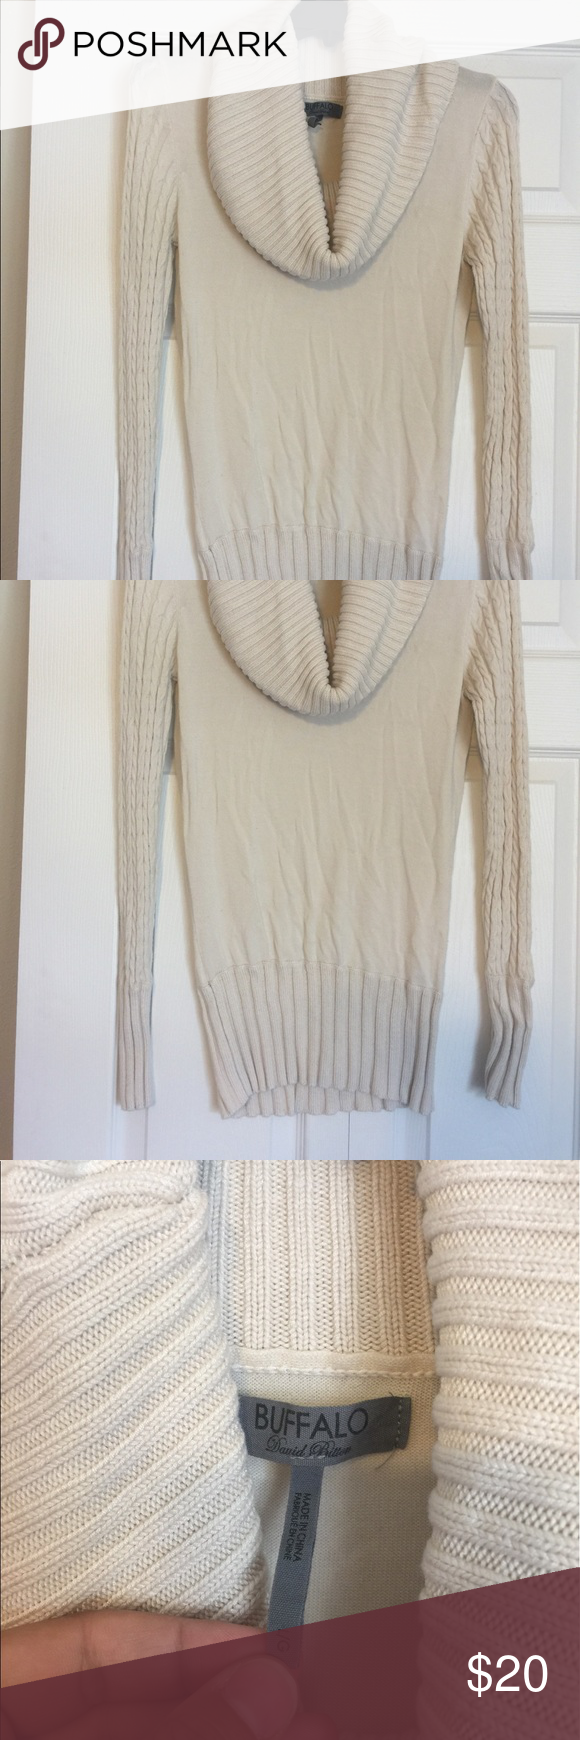 Buffalo Sweater | Cable, A b c and Cowl neck